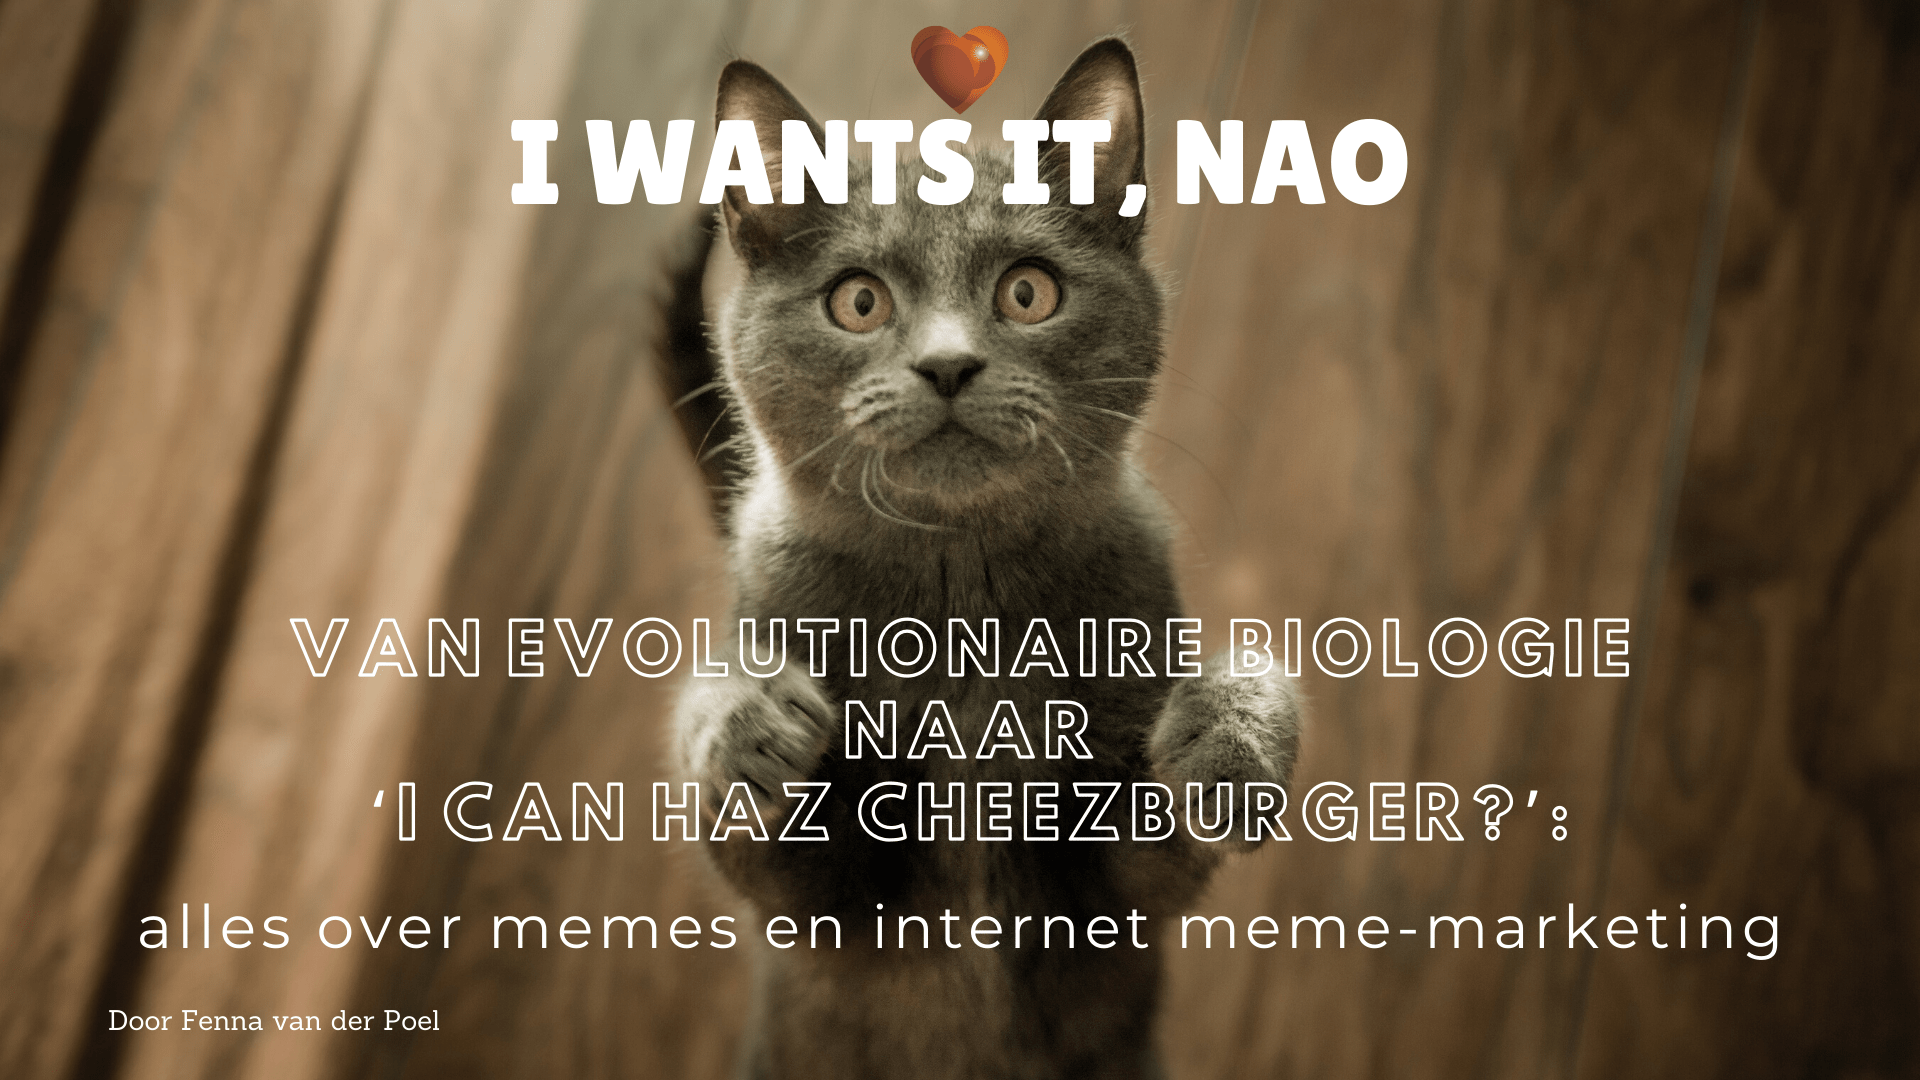 Van evolutionaire biologie naar 'I Can Haz Cheezburger_'_ alles over memes en internet meme-marketing